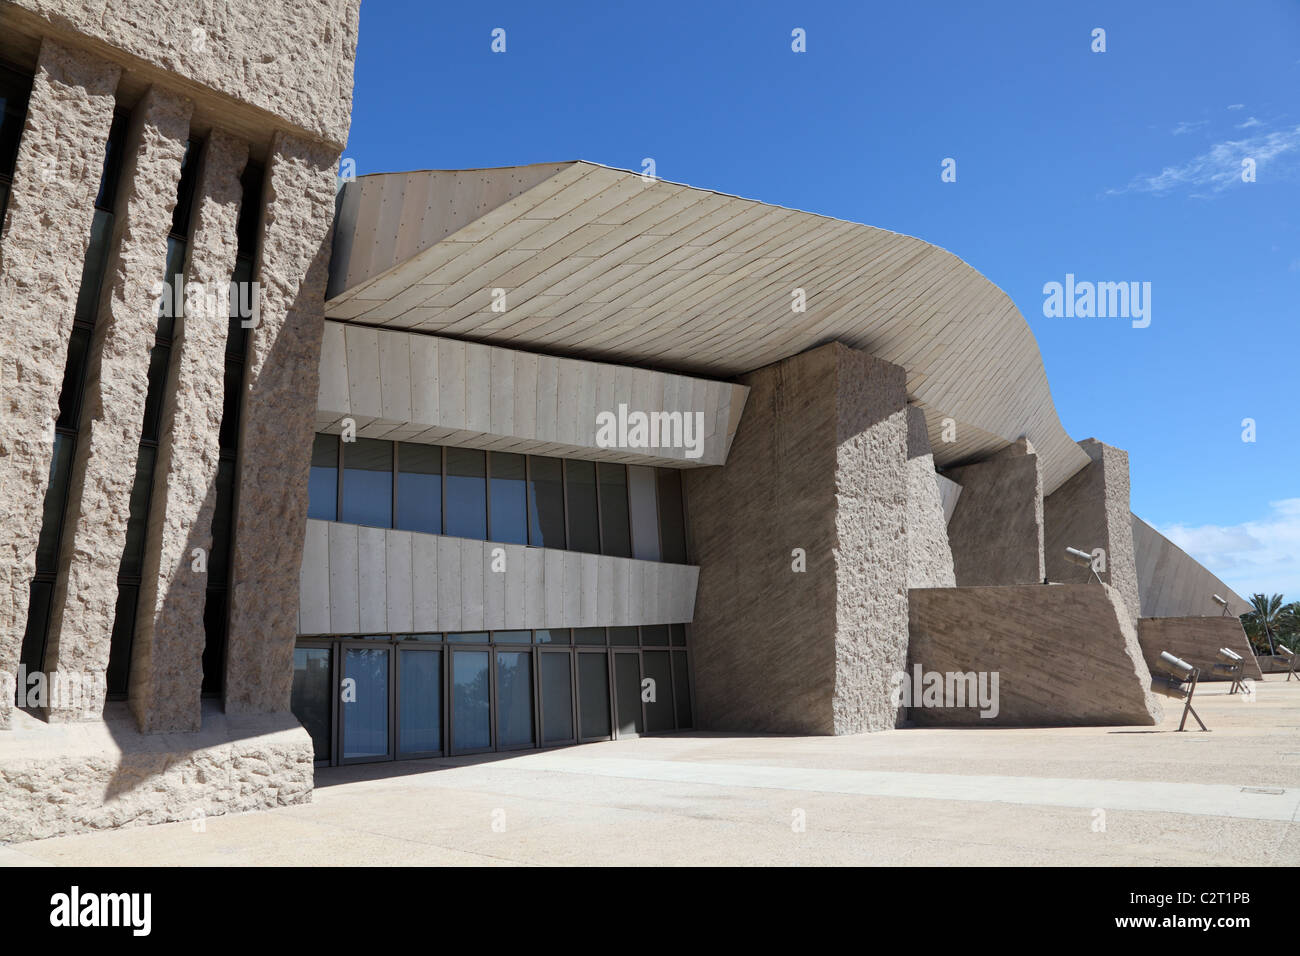 MAGMA - the futuristic Convention Center in Las Americas, Canary Island Tenerife, Spain - Stock Image